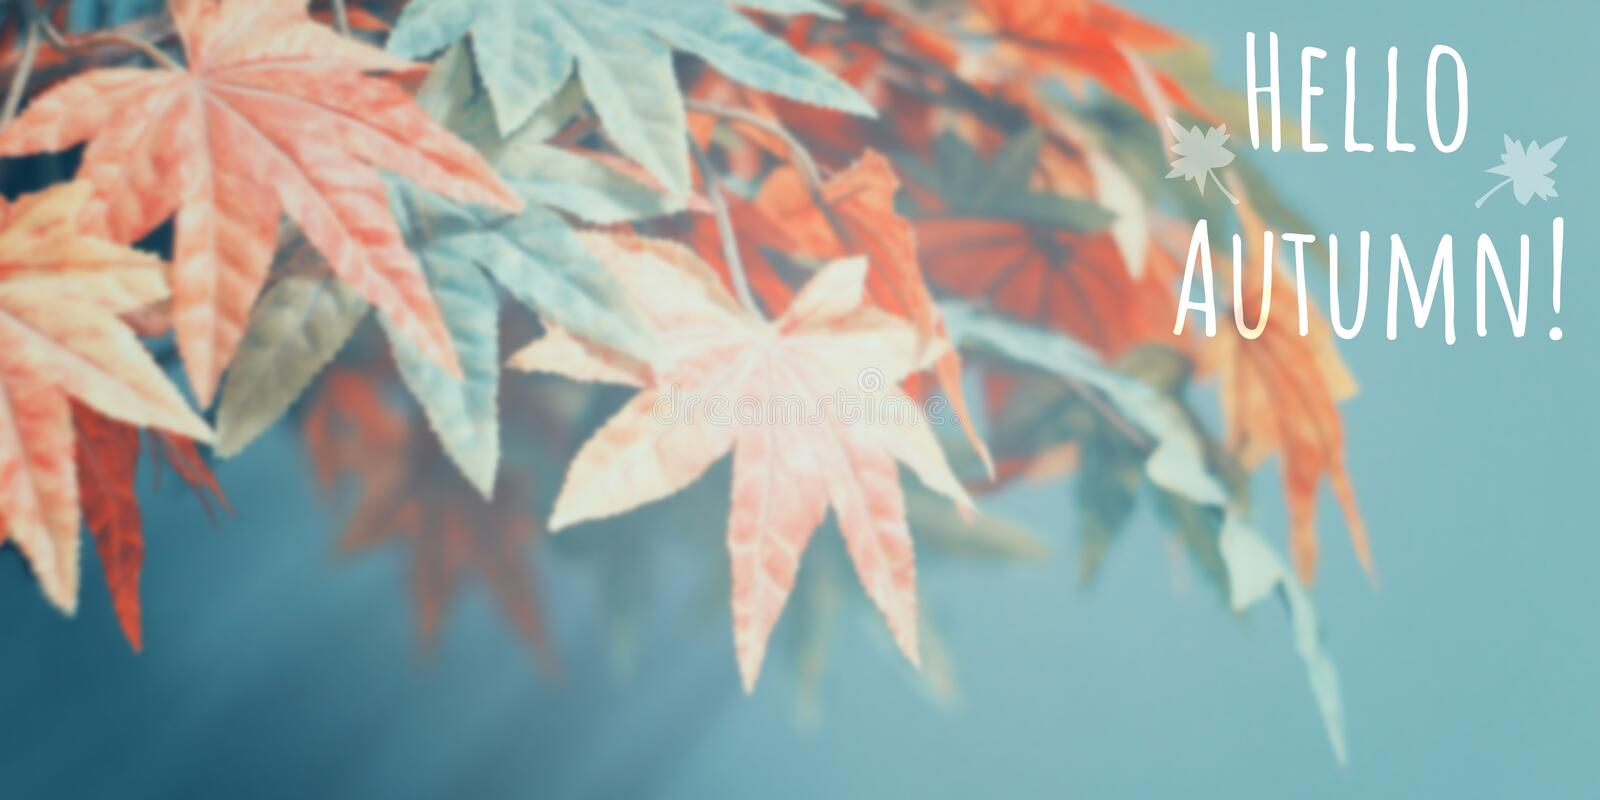 Abstract blur background of colorful maples royalty free stock image